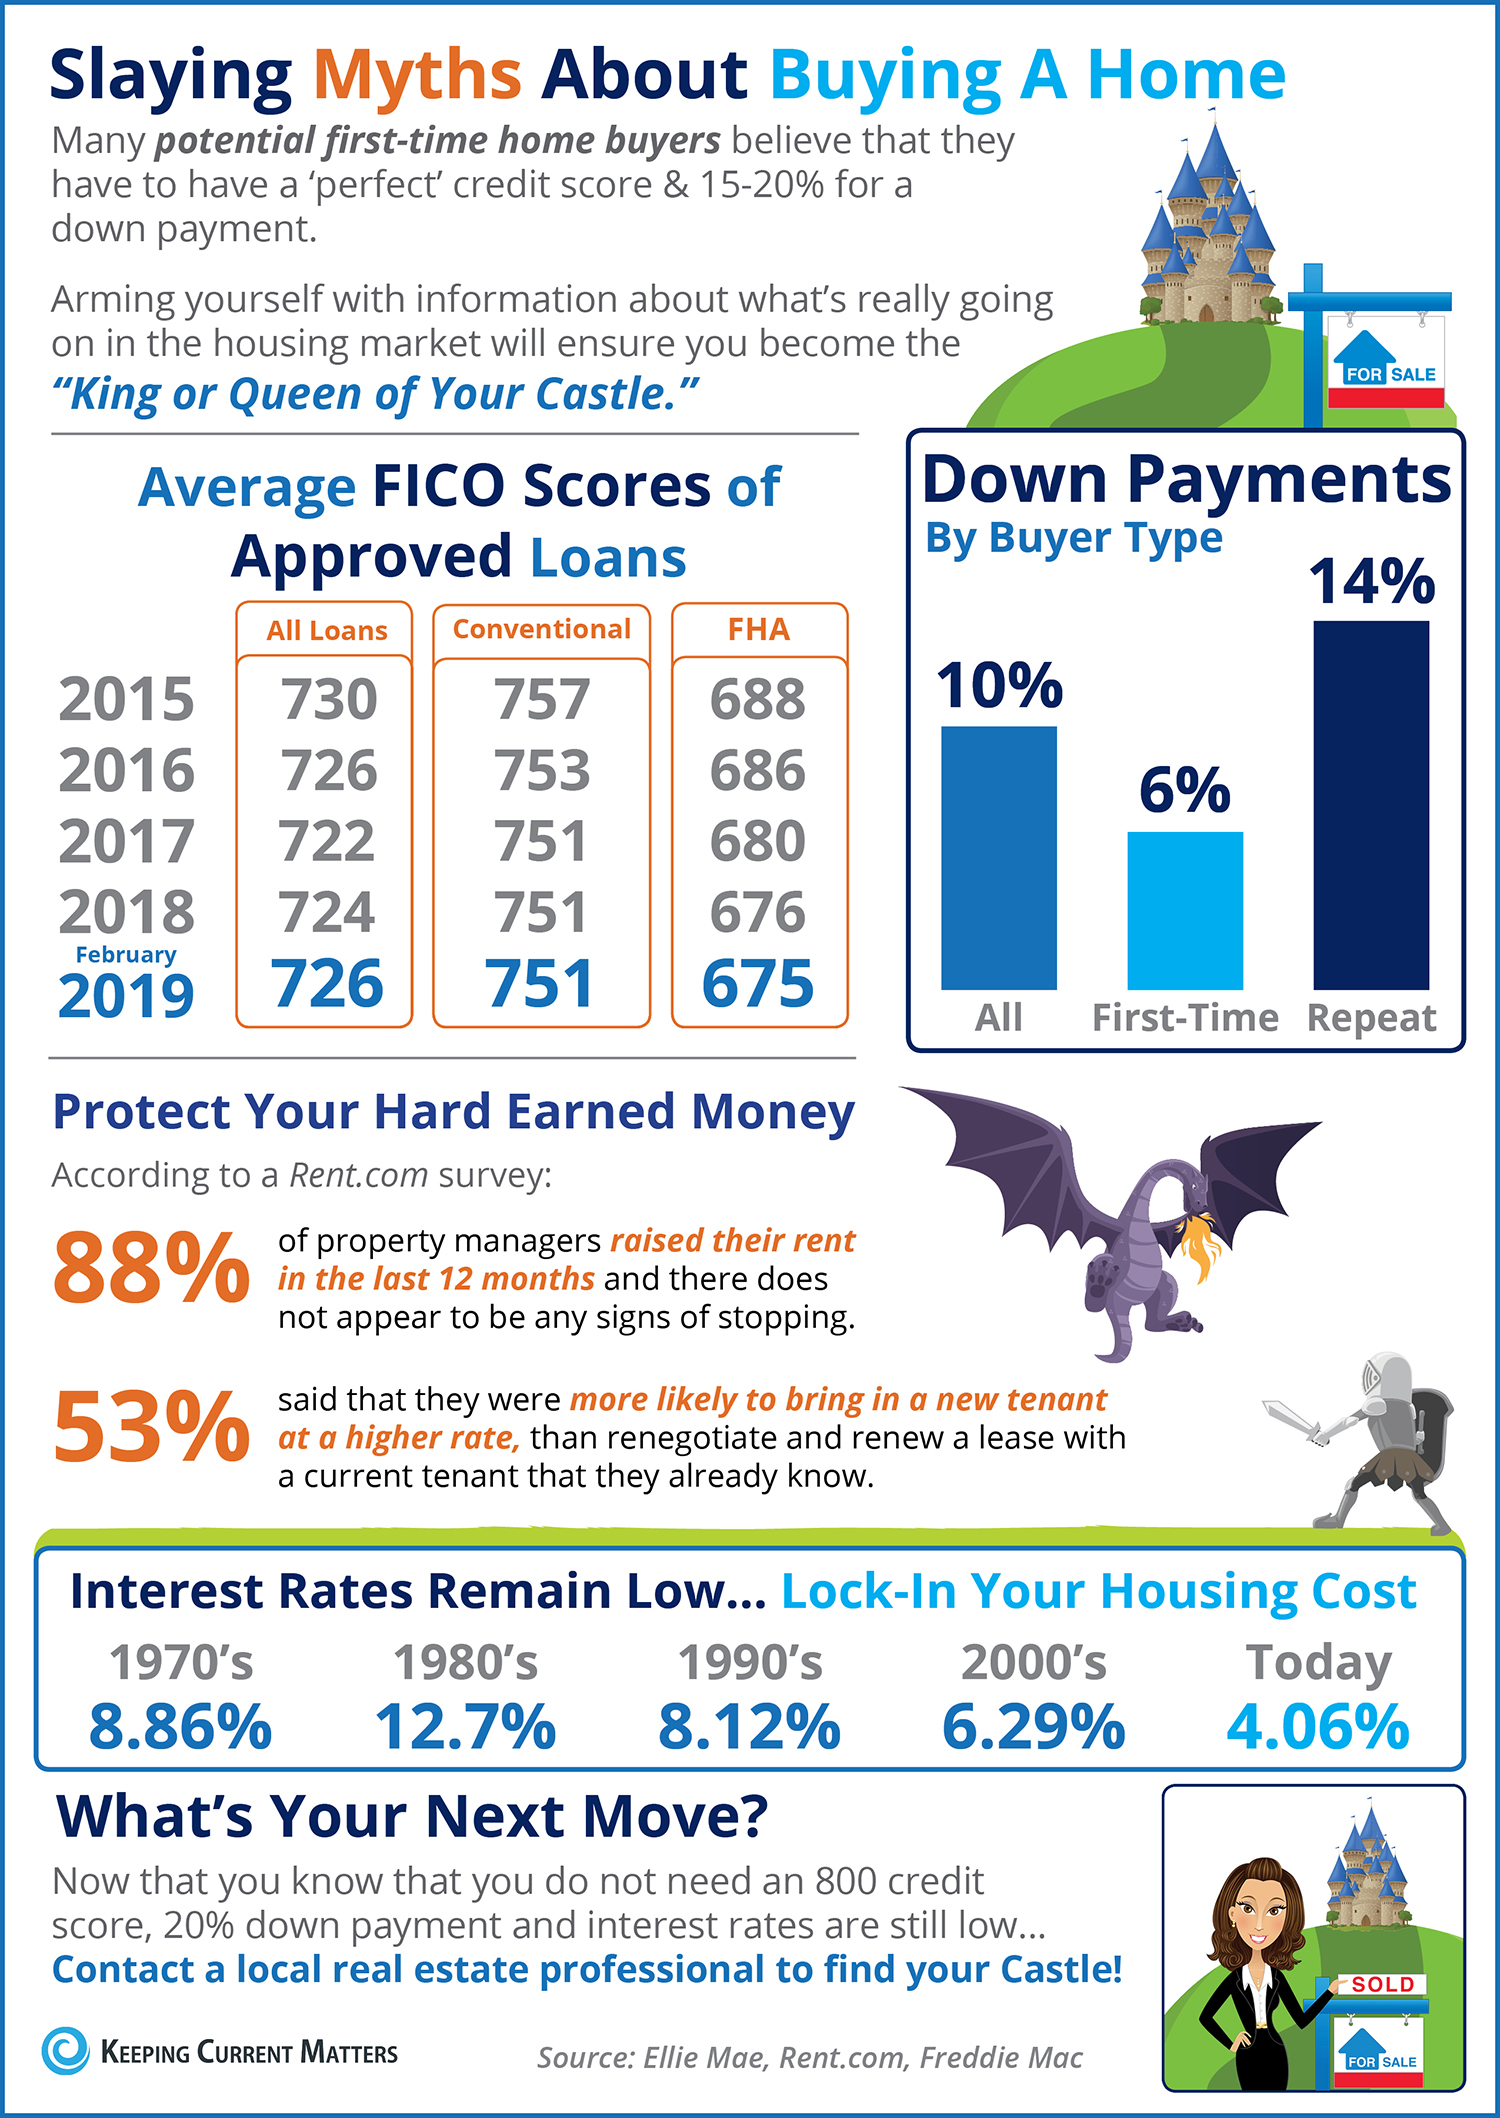 Slaying the Largest Homebuying Myths Today [INFOGRAPHIC] | Keeping Current Matters